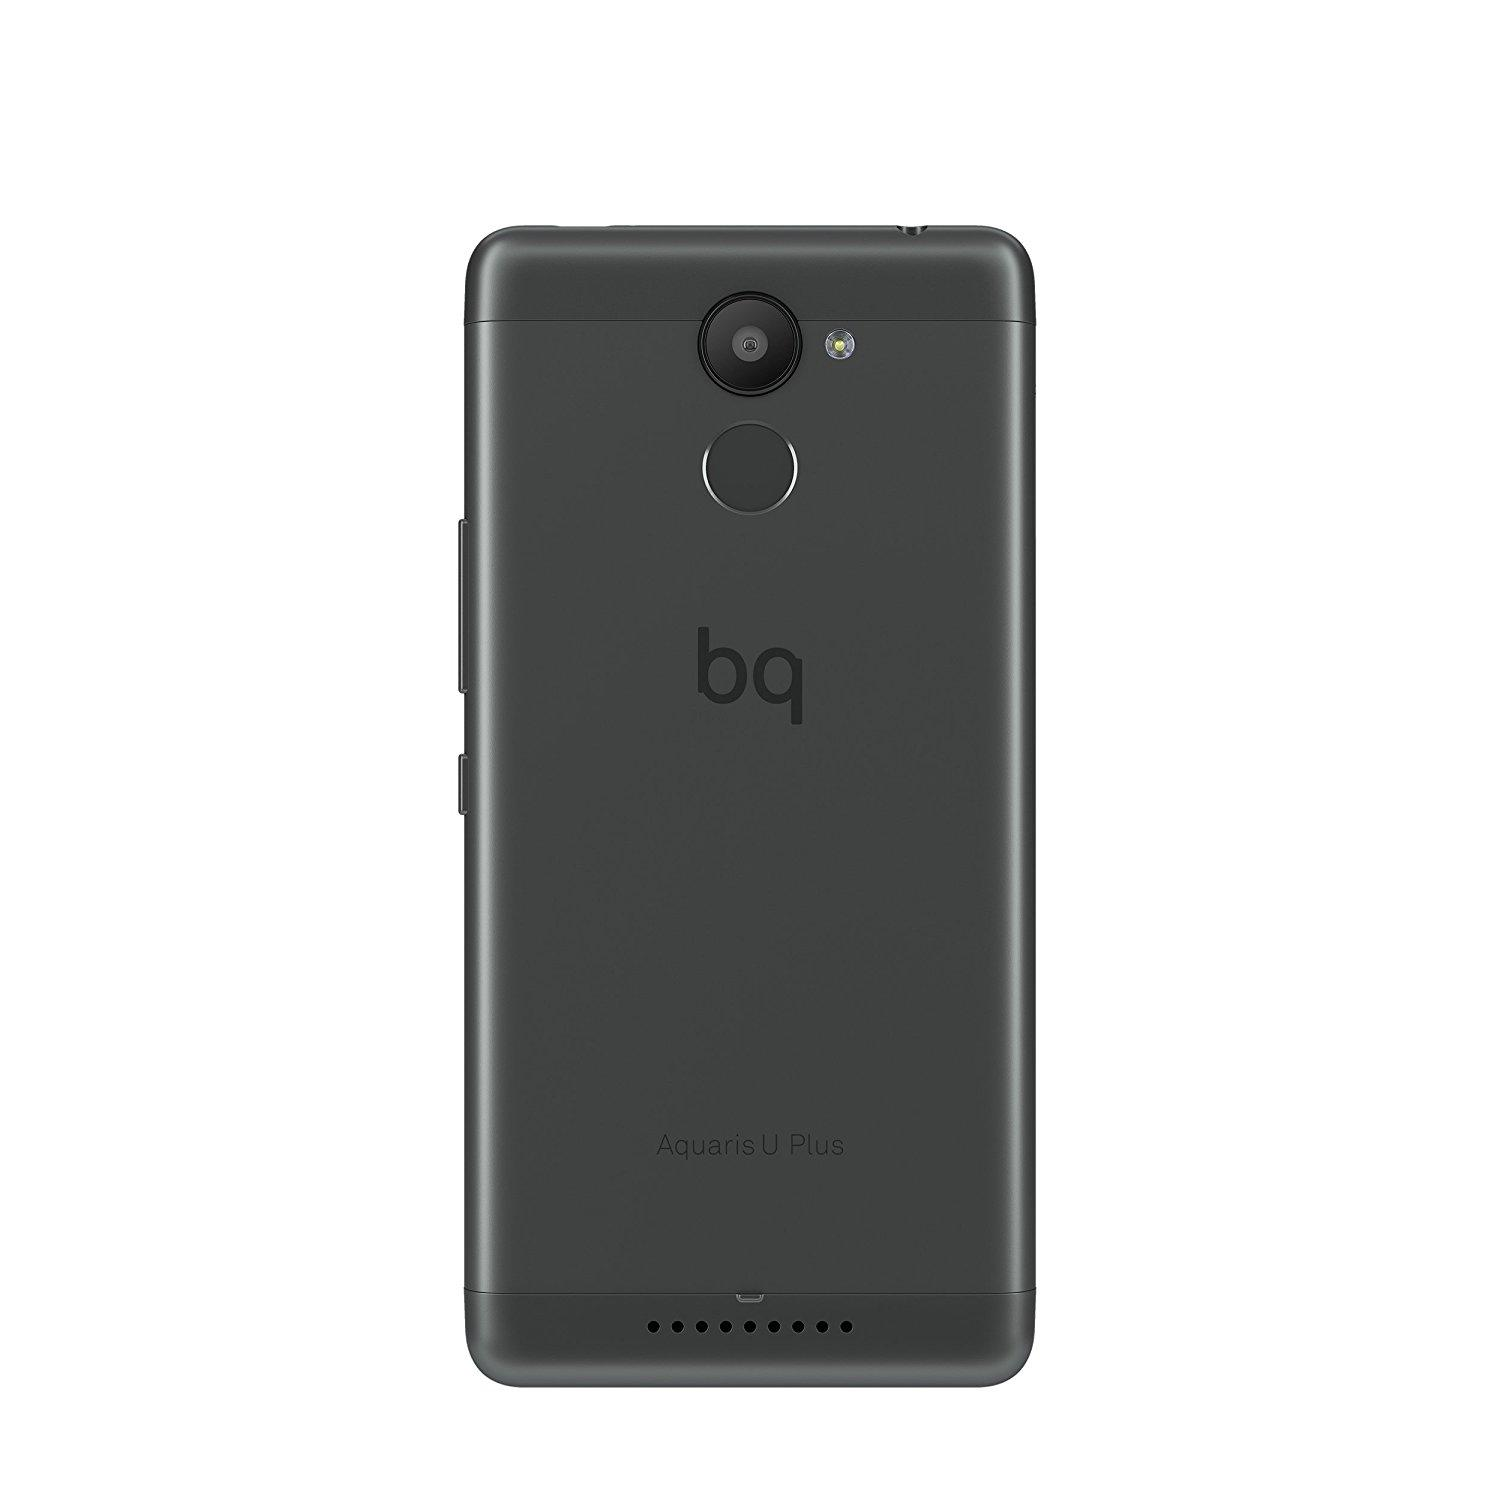 https://www.amazon.es/BQ-Aquaris-Plus-Smartphone-Marshmallow/dp/B06X165TYD/ref=sr_1_36?s=electronics&ie=UTF8&qid=1528961603&sr=1-36&keywords=moviles&th=1